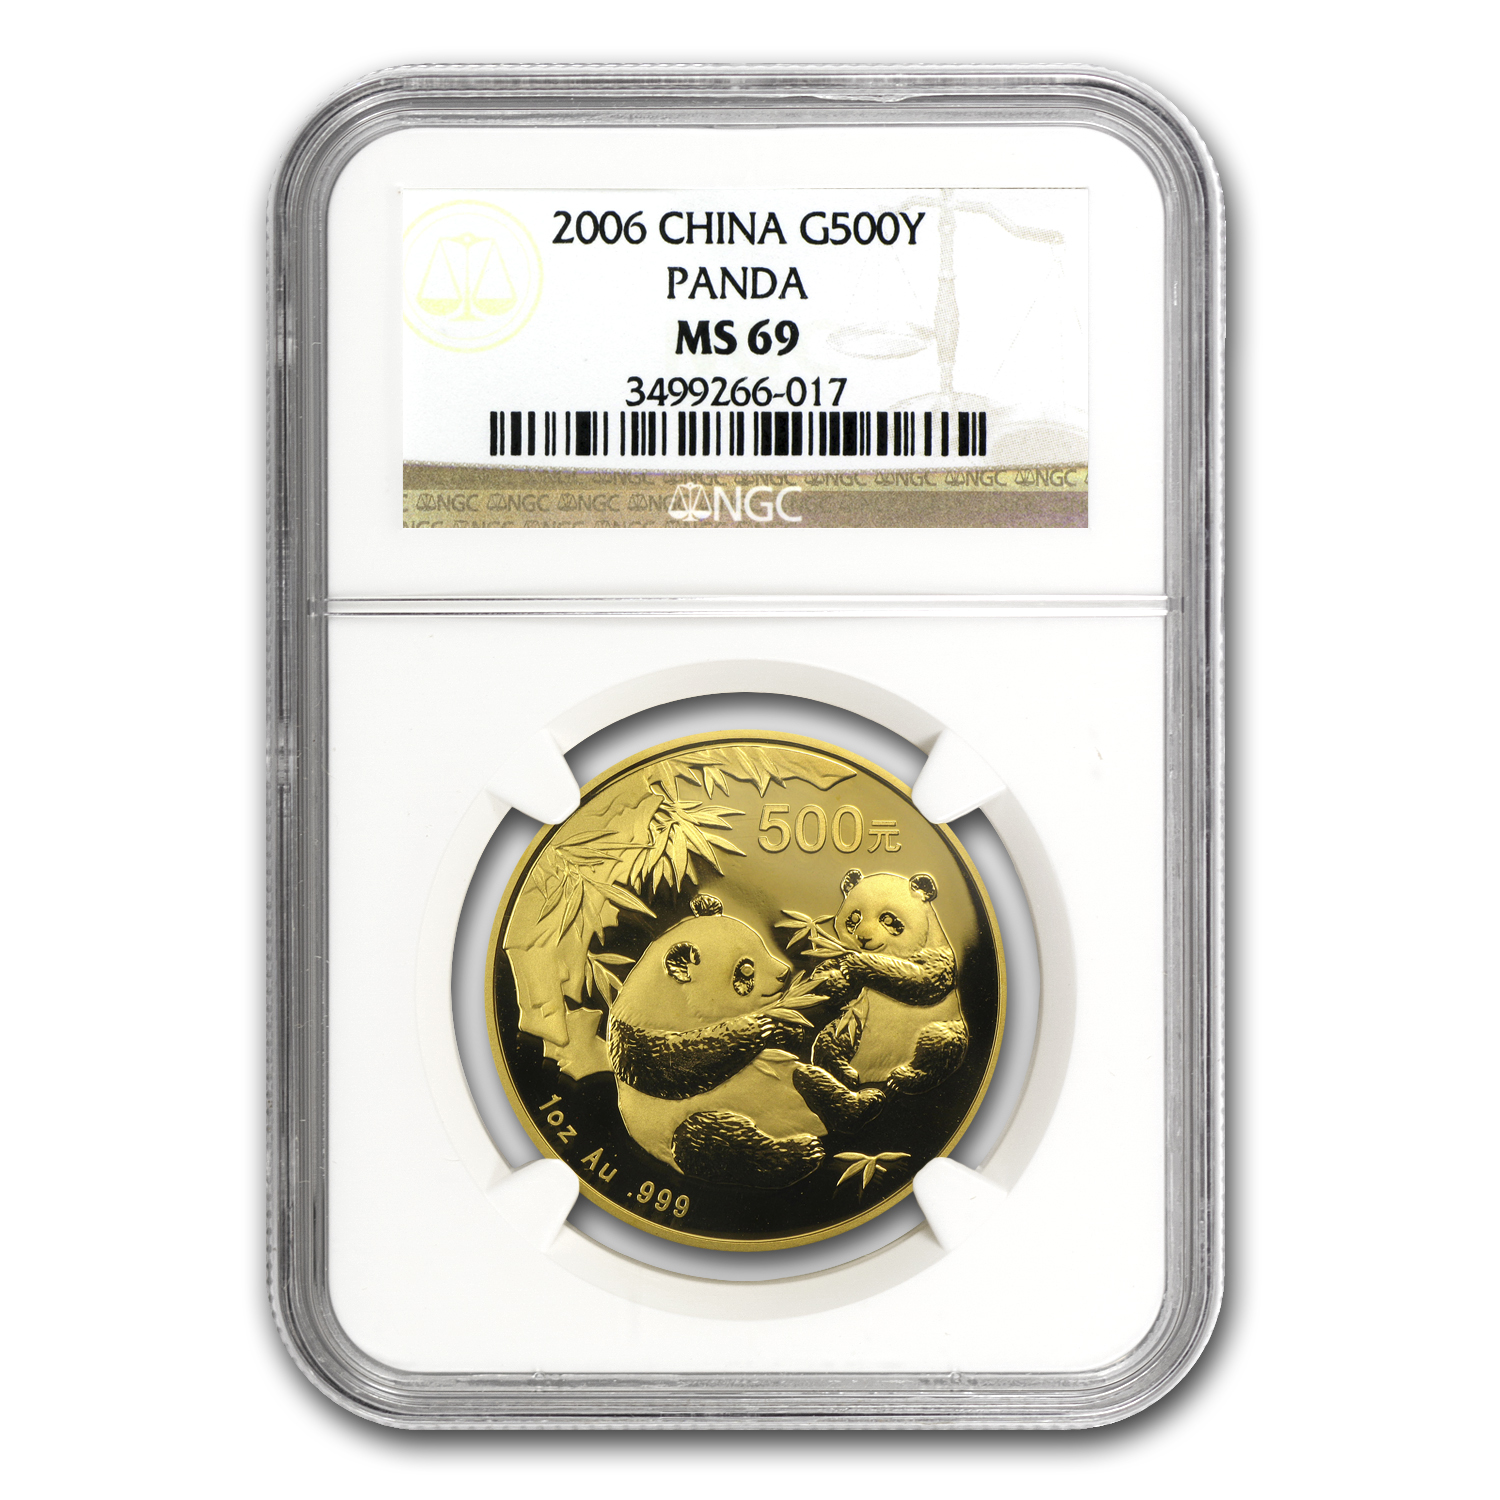 2006 1 oz Gold Chinese Panda MS-69 NGC